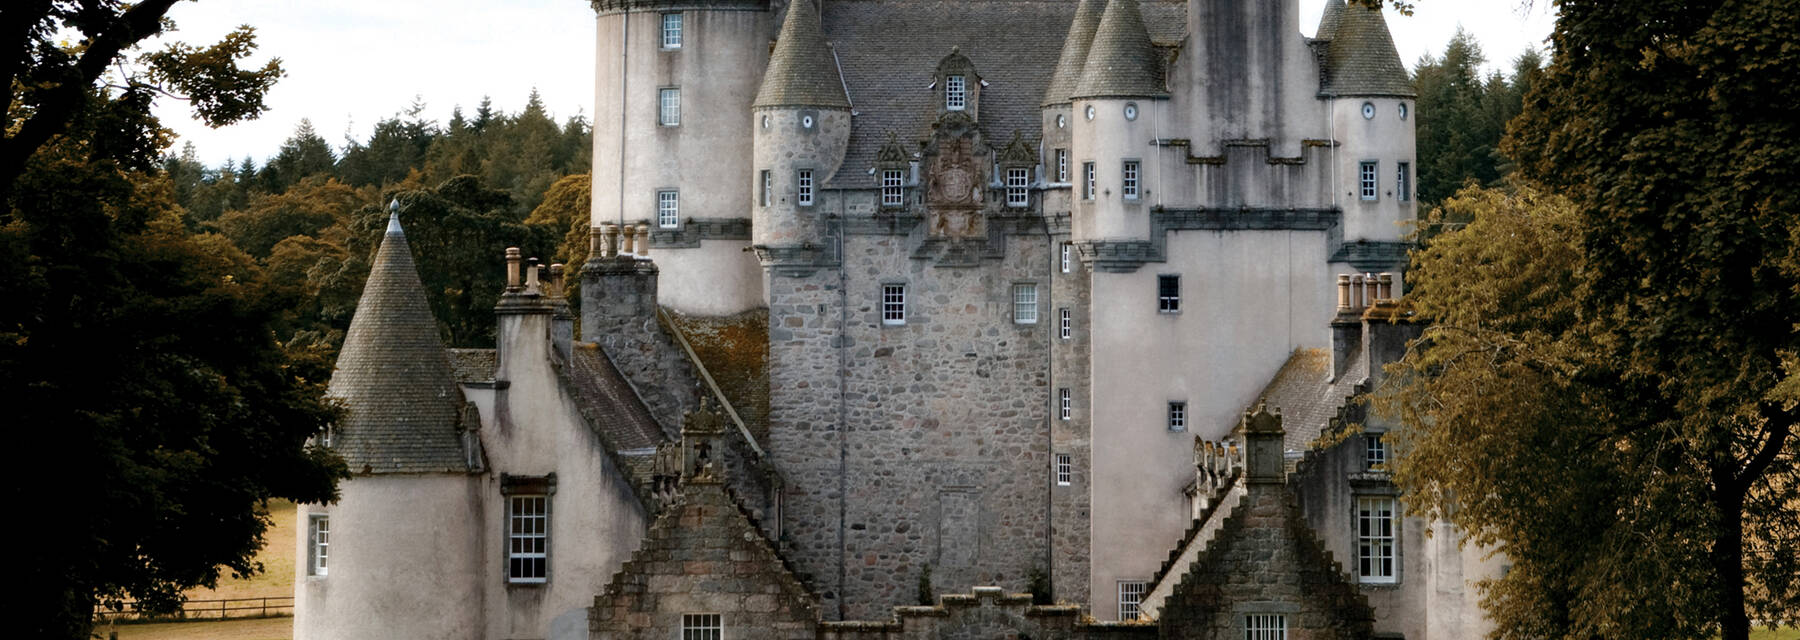 View of Castle Fraser's main entrance in autumn